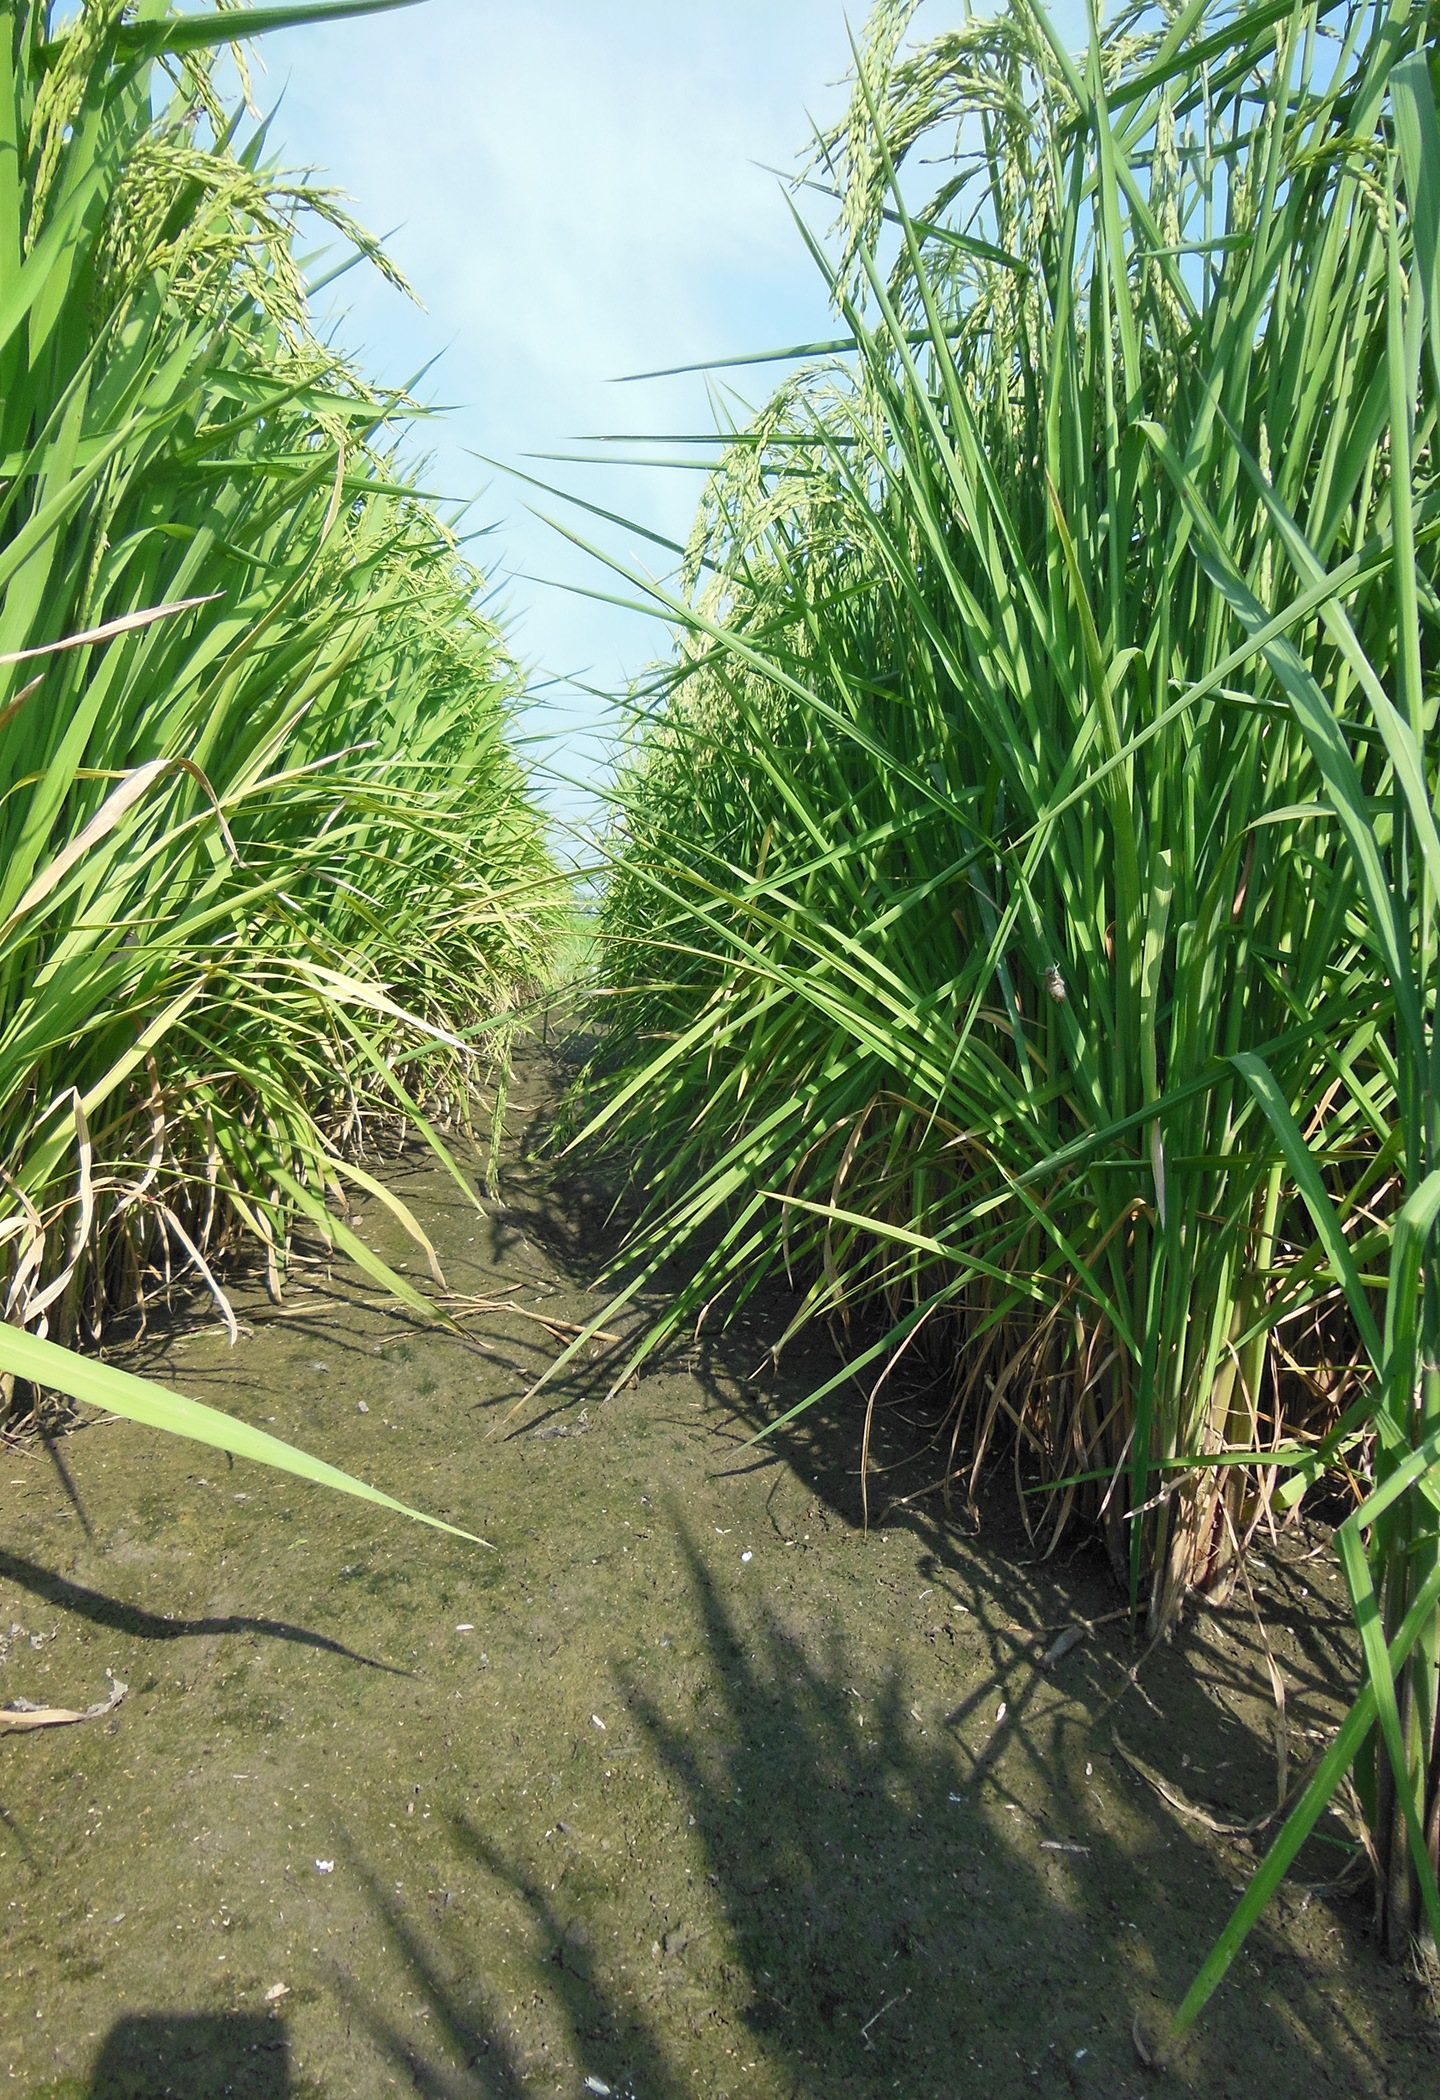 20161206_rice.jpg Photo by Lee Atwill, Mississippi State University Extension Service, used with permission_255799